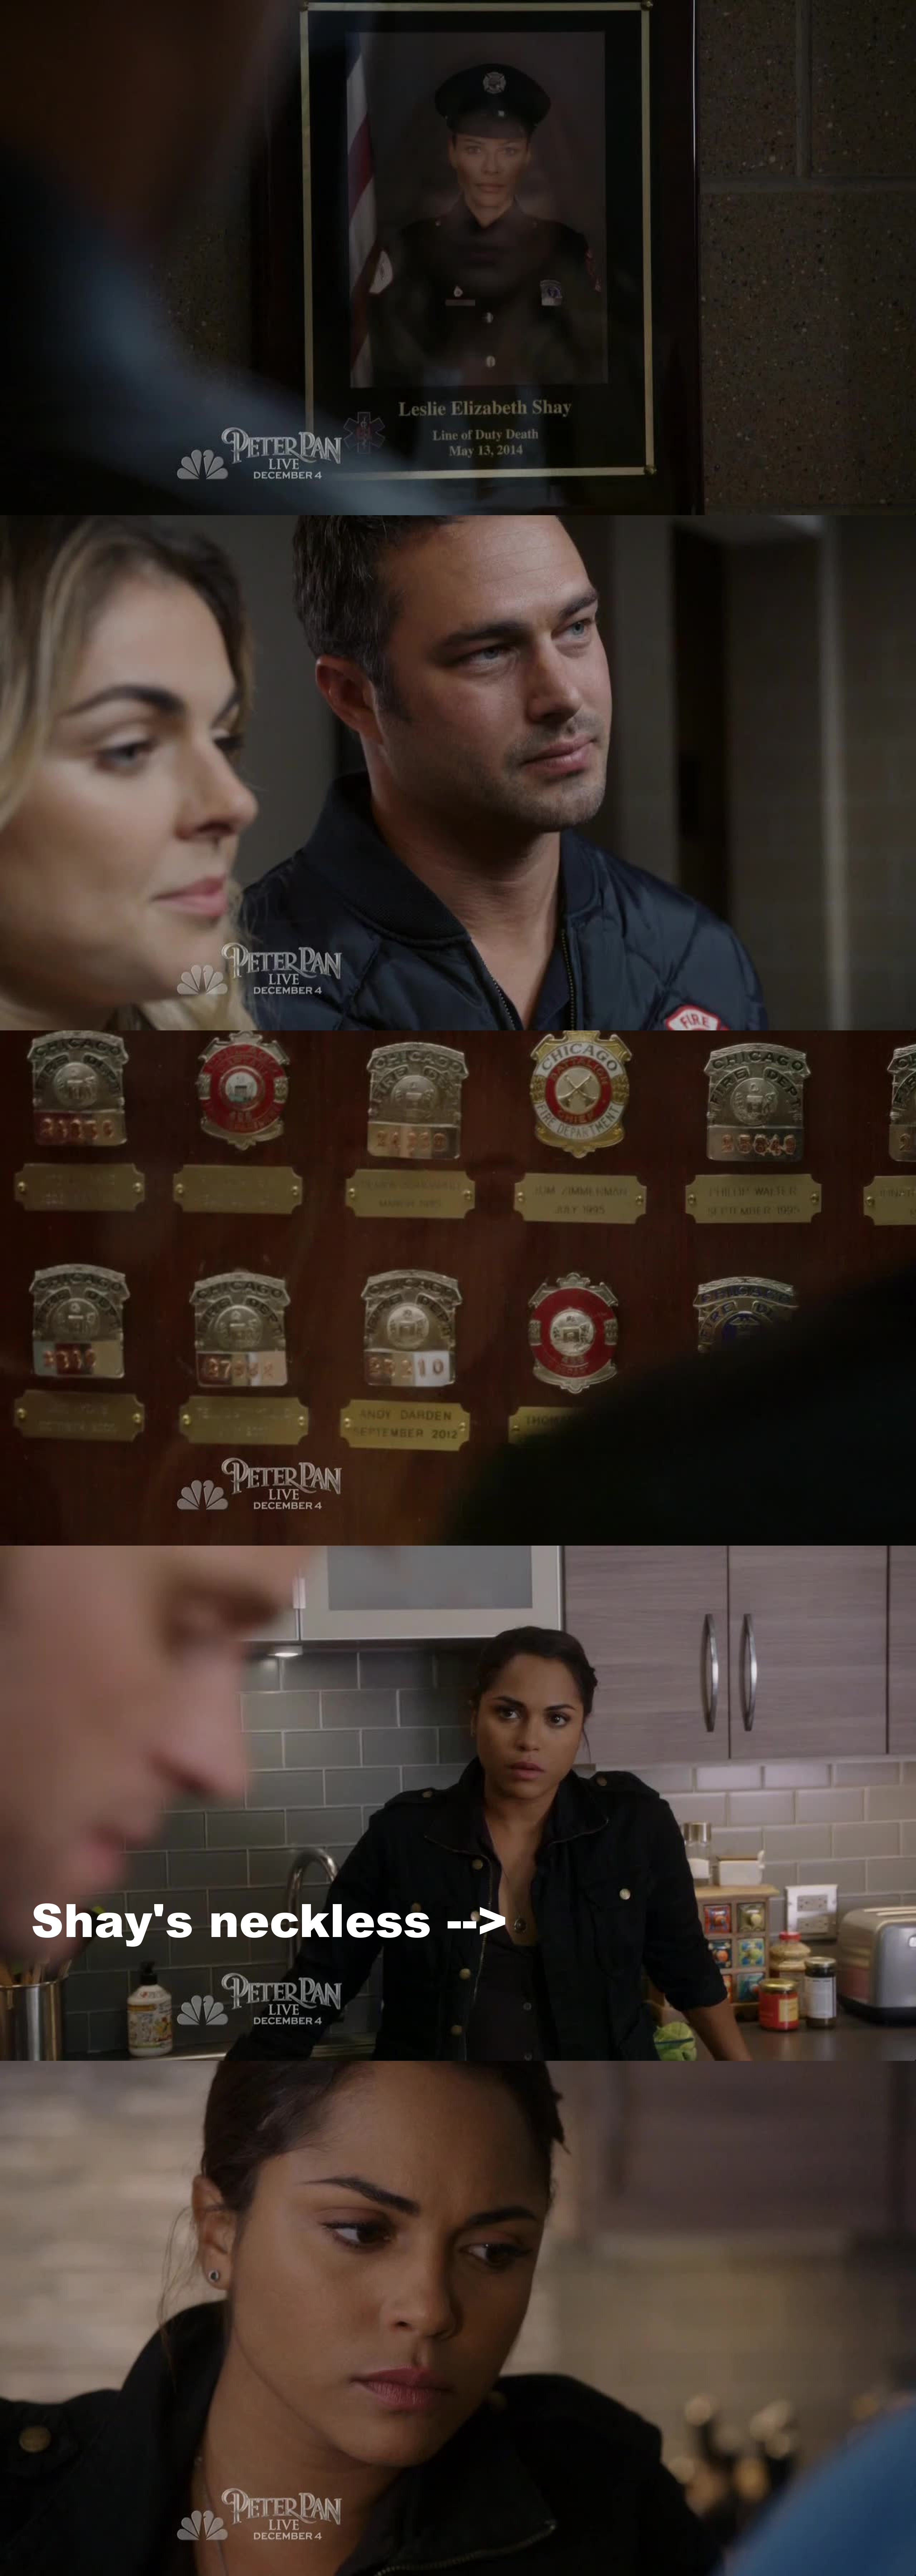 """ENOOOOUUUUUGH !!!!!! HOW DARE YOU ... My heart still can't handle it guys ... I miss Shay so much ... Their wasn't ANY episode when they didn't mention her.... Right now, Severide seems to moving on and be """"ok"""" but now, it's Dawson who desperately need her ... When things weren't ok with Casey she will talk with Shay ... But she can't now and it's so painful .... When the EP chose the character who will die, they definitely pick the good one to affect the strongest character ... Miss you Shay ... ALWAYS!"""